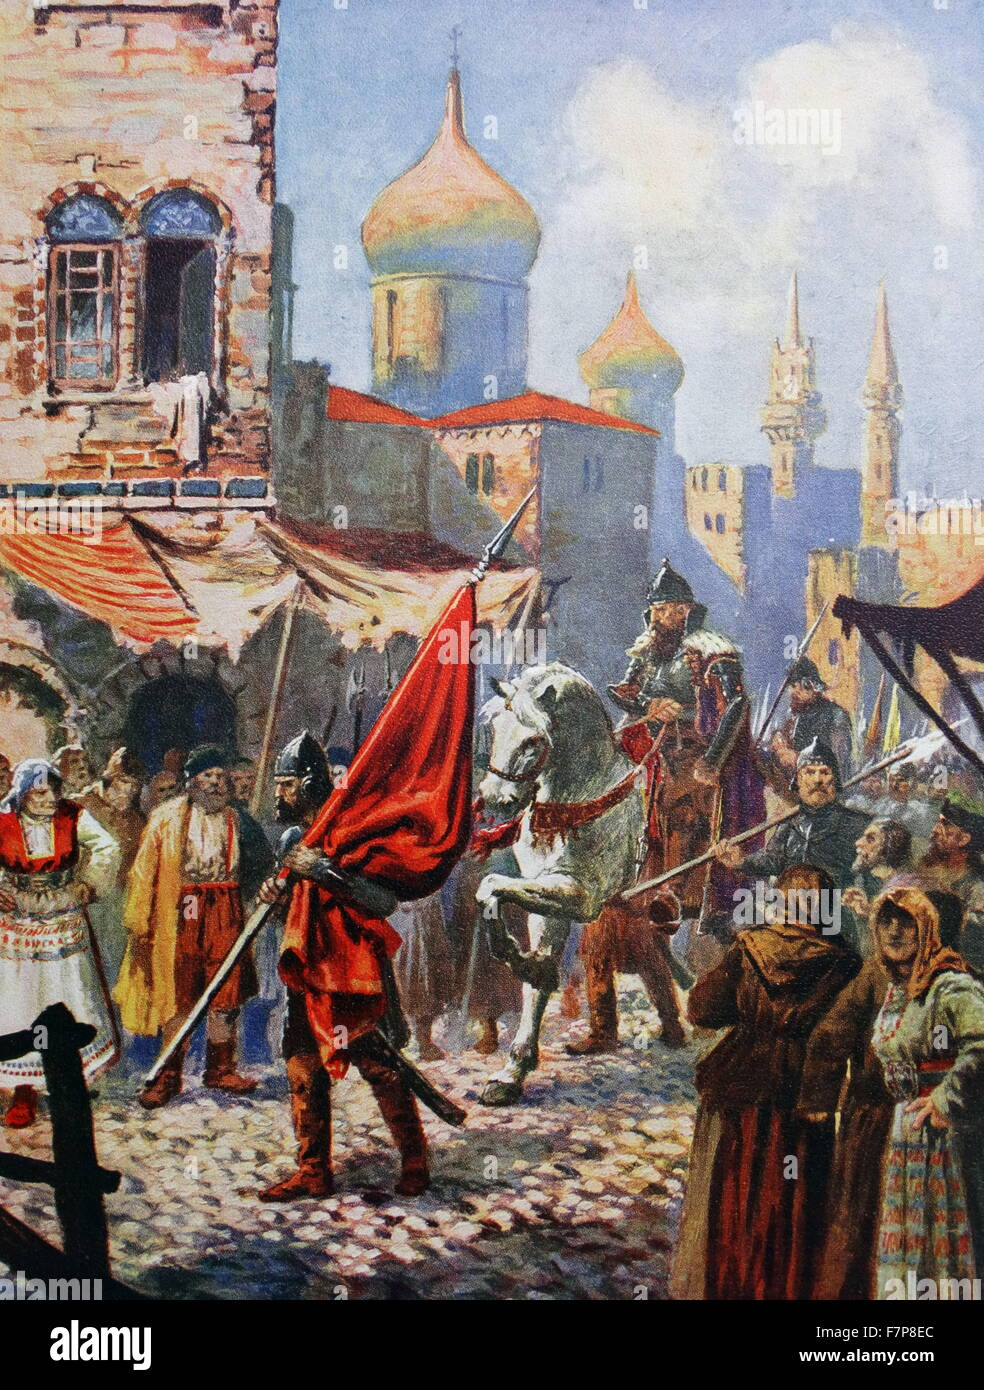 The return of Ivan The Terrible to Moscow after the conquest of Kazan. - Stock Image